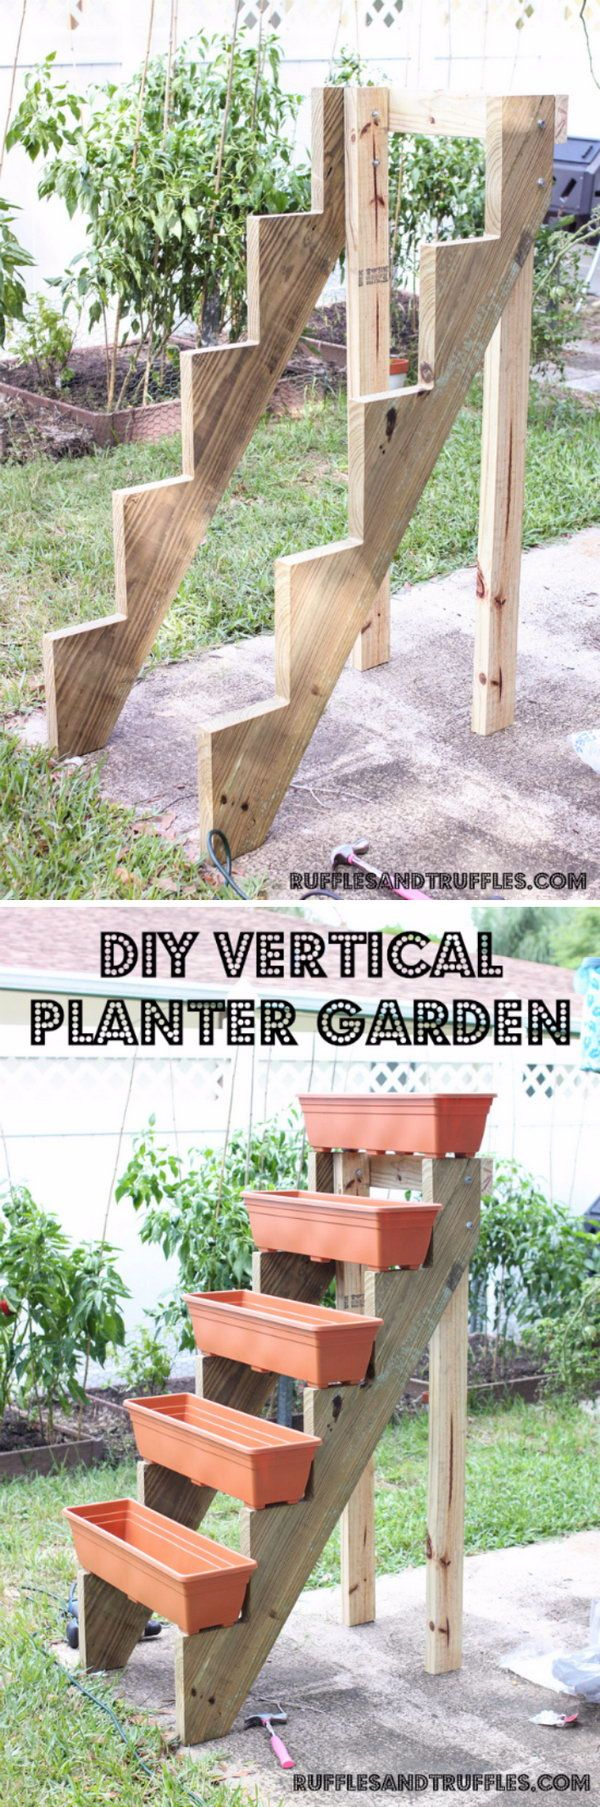 17 best ideas about vertical gardens on pinterest wall for Vertical garden planters diy